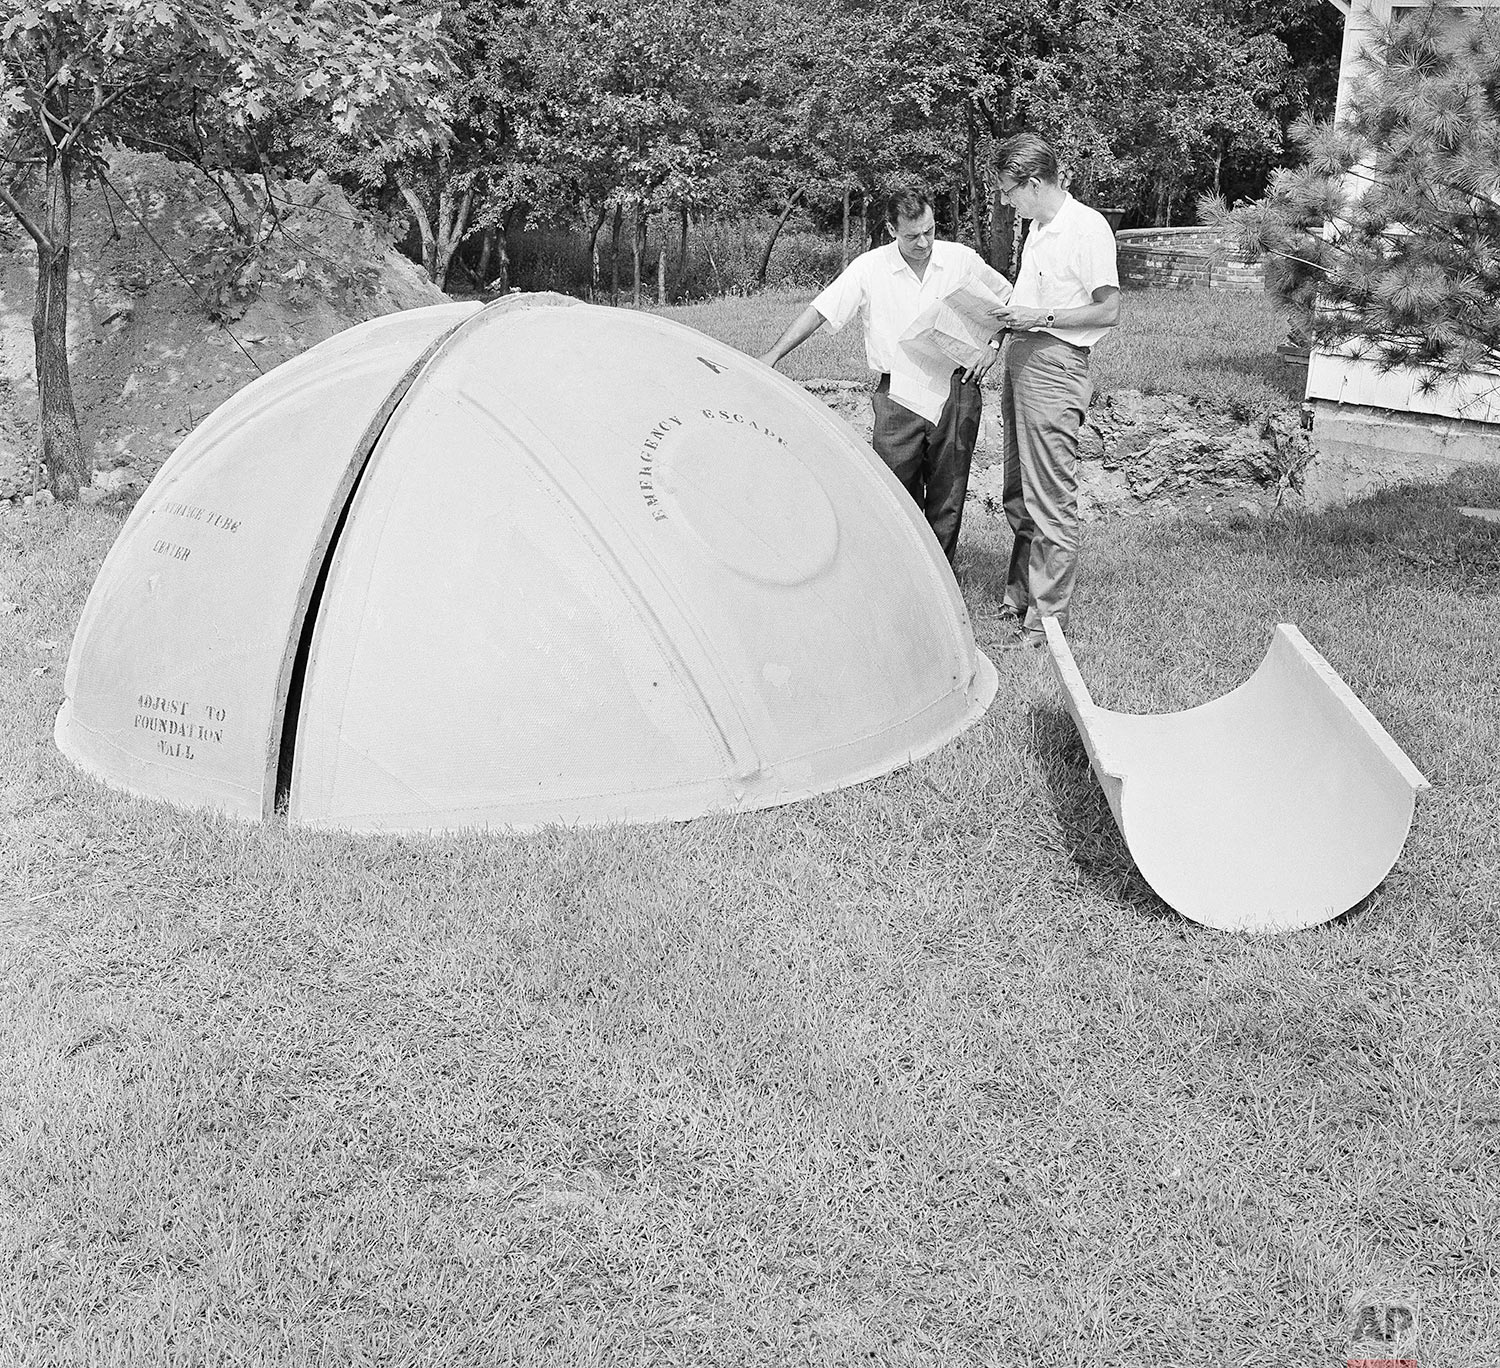 In this Sept. 7, 1961 photo, bomb shelter manufacturer engineers Vincent Carubia, left, and Eward Klein study specifications for a fiber glass dome shelter being installed on an estate in Locust Valley, N.Y. (AP Photo)